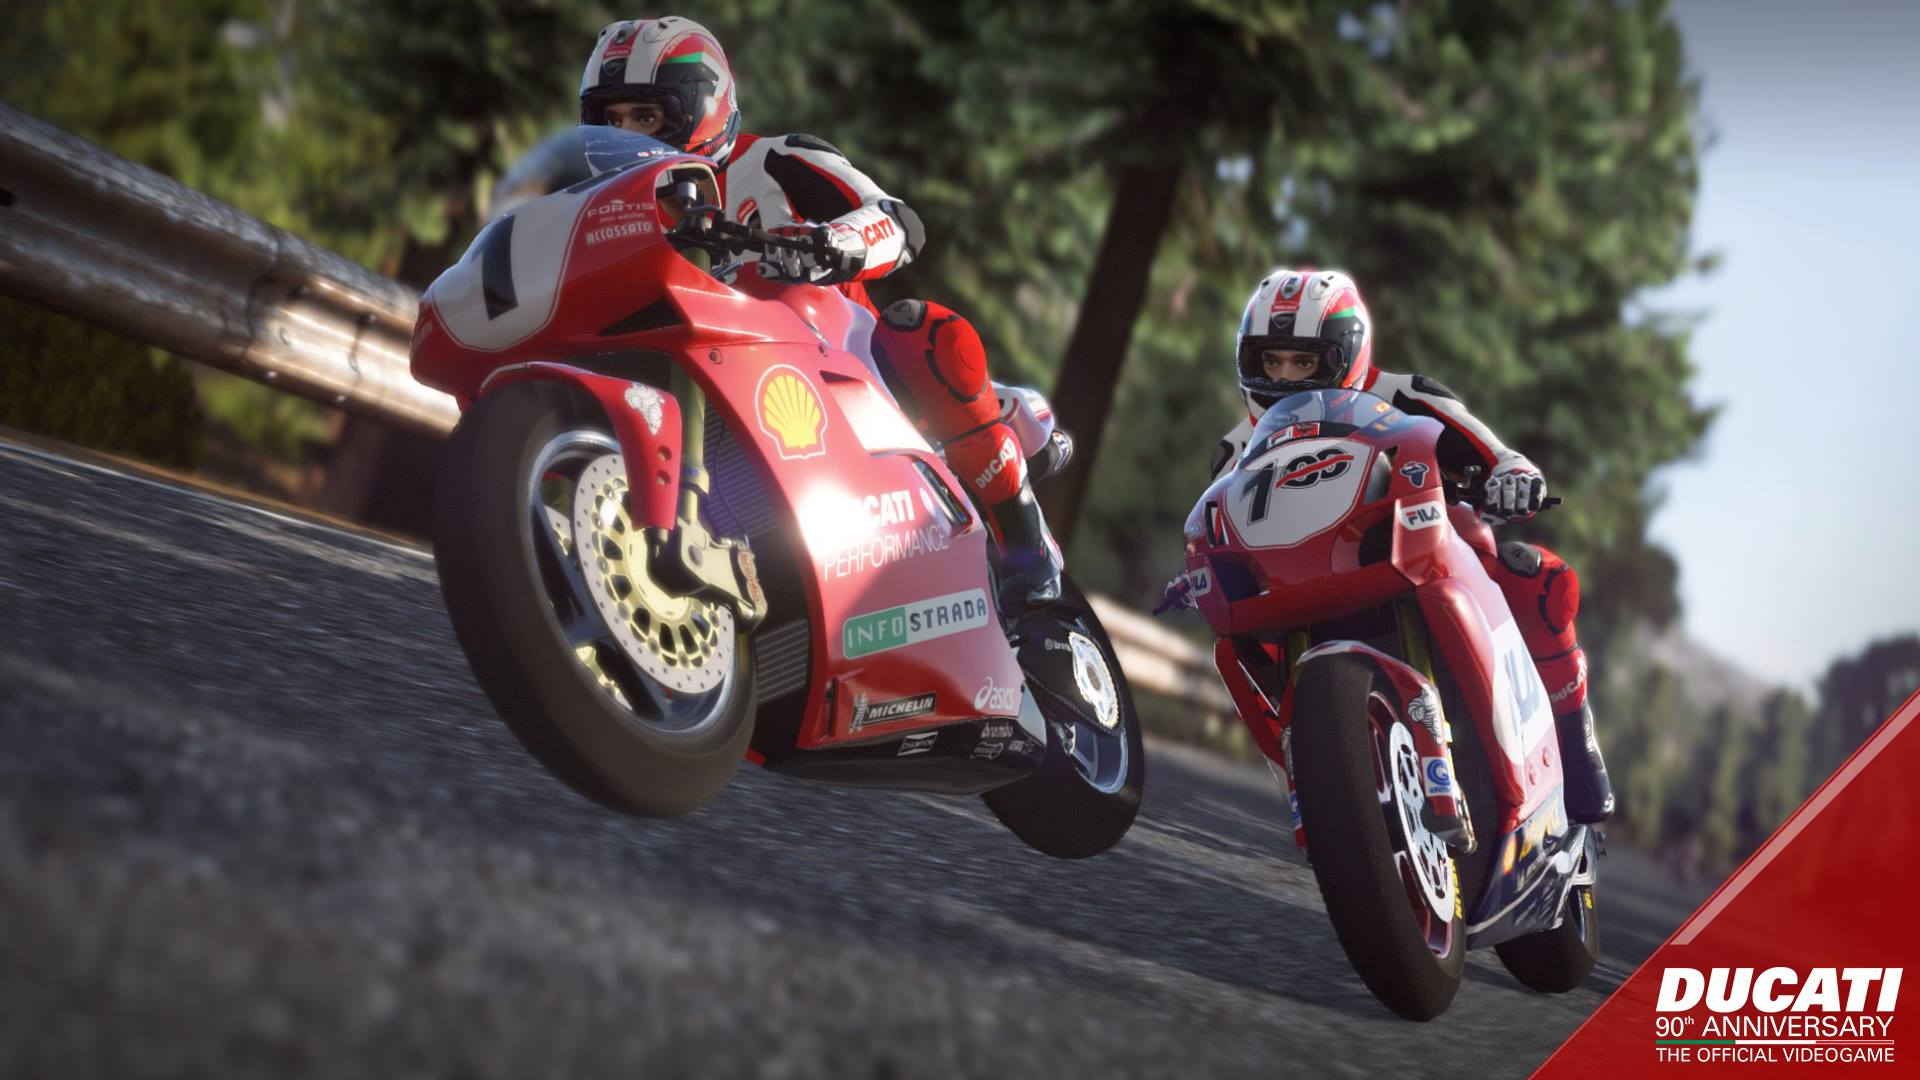 Ducati 90th Anniversary: The Official Videogame riding onto consoles and PC in June